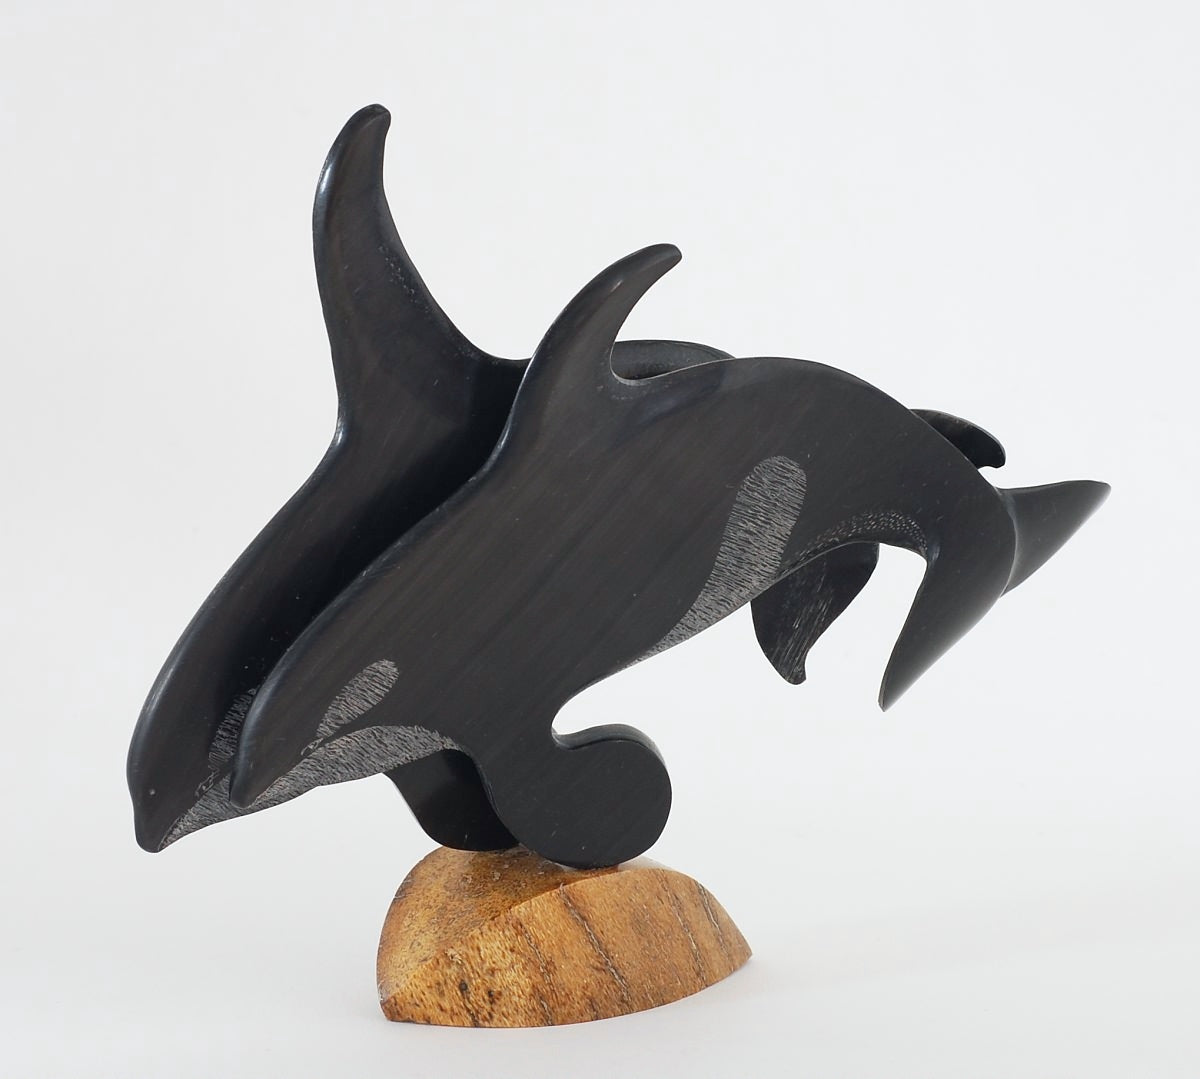 Double Baleen Orca Carving by Keith Kanginok